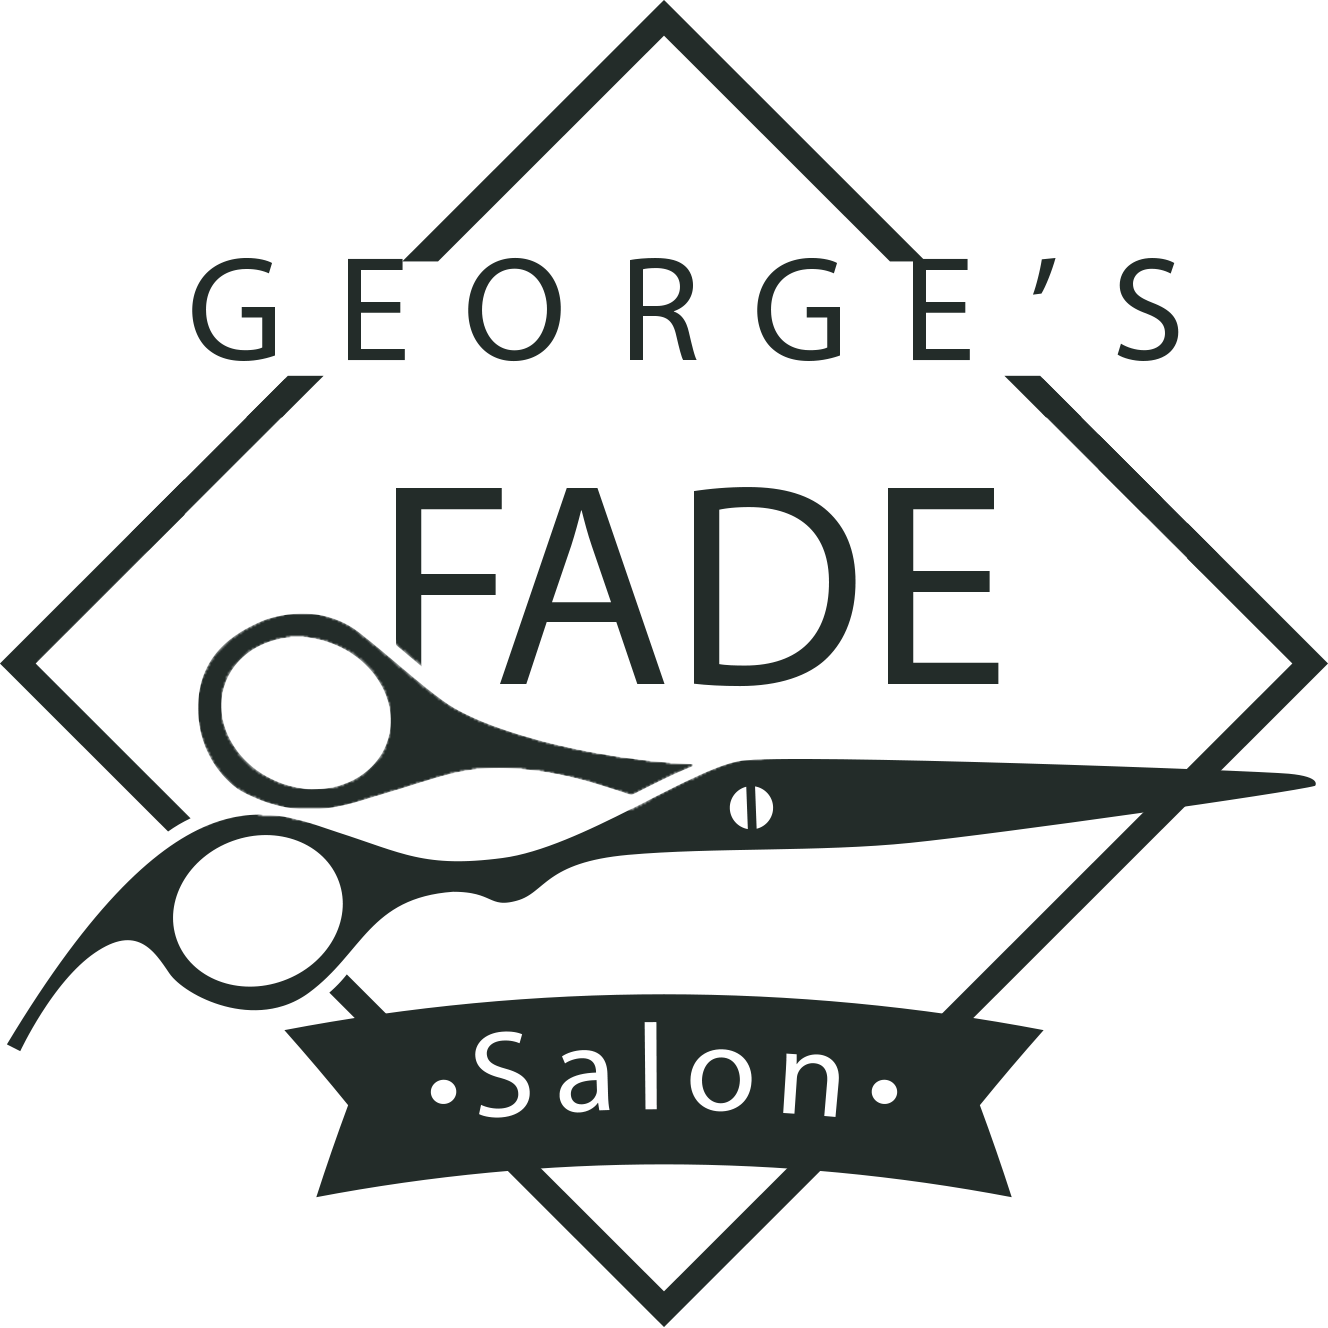 George's Fade Salons